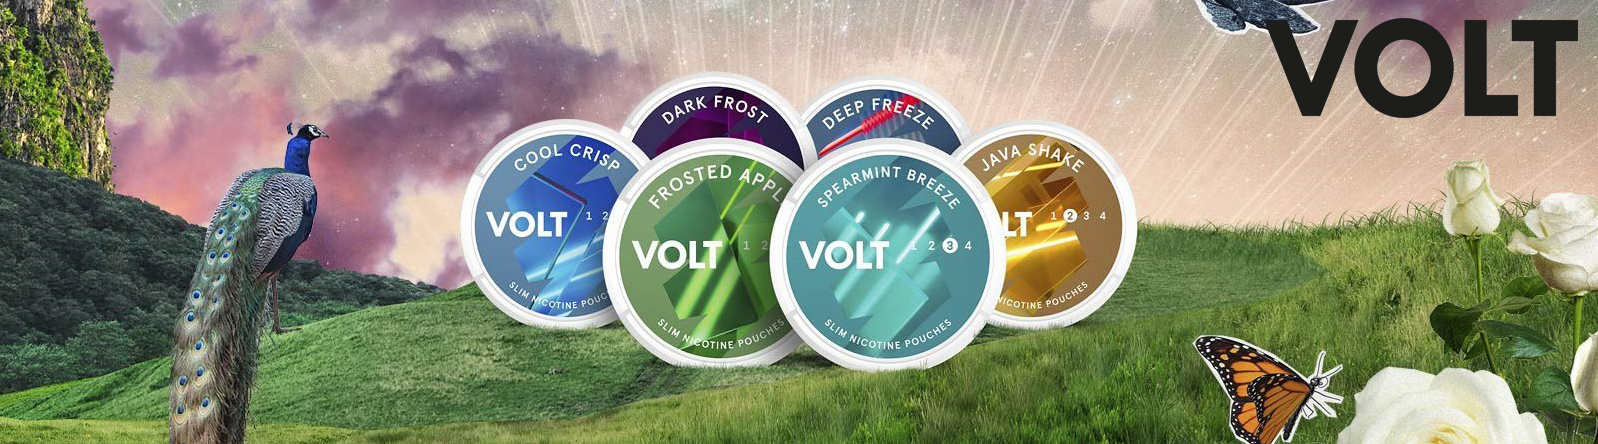 New VOLT from SM at Snus24